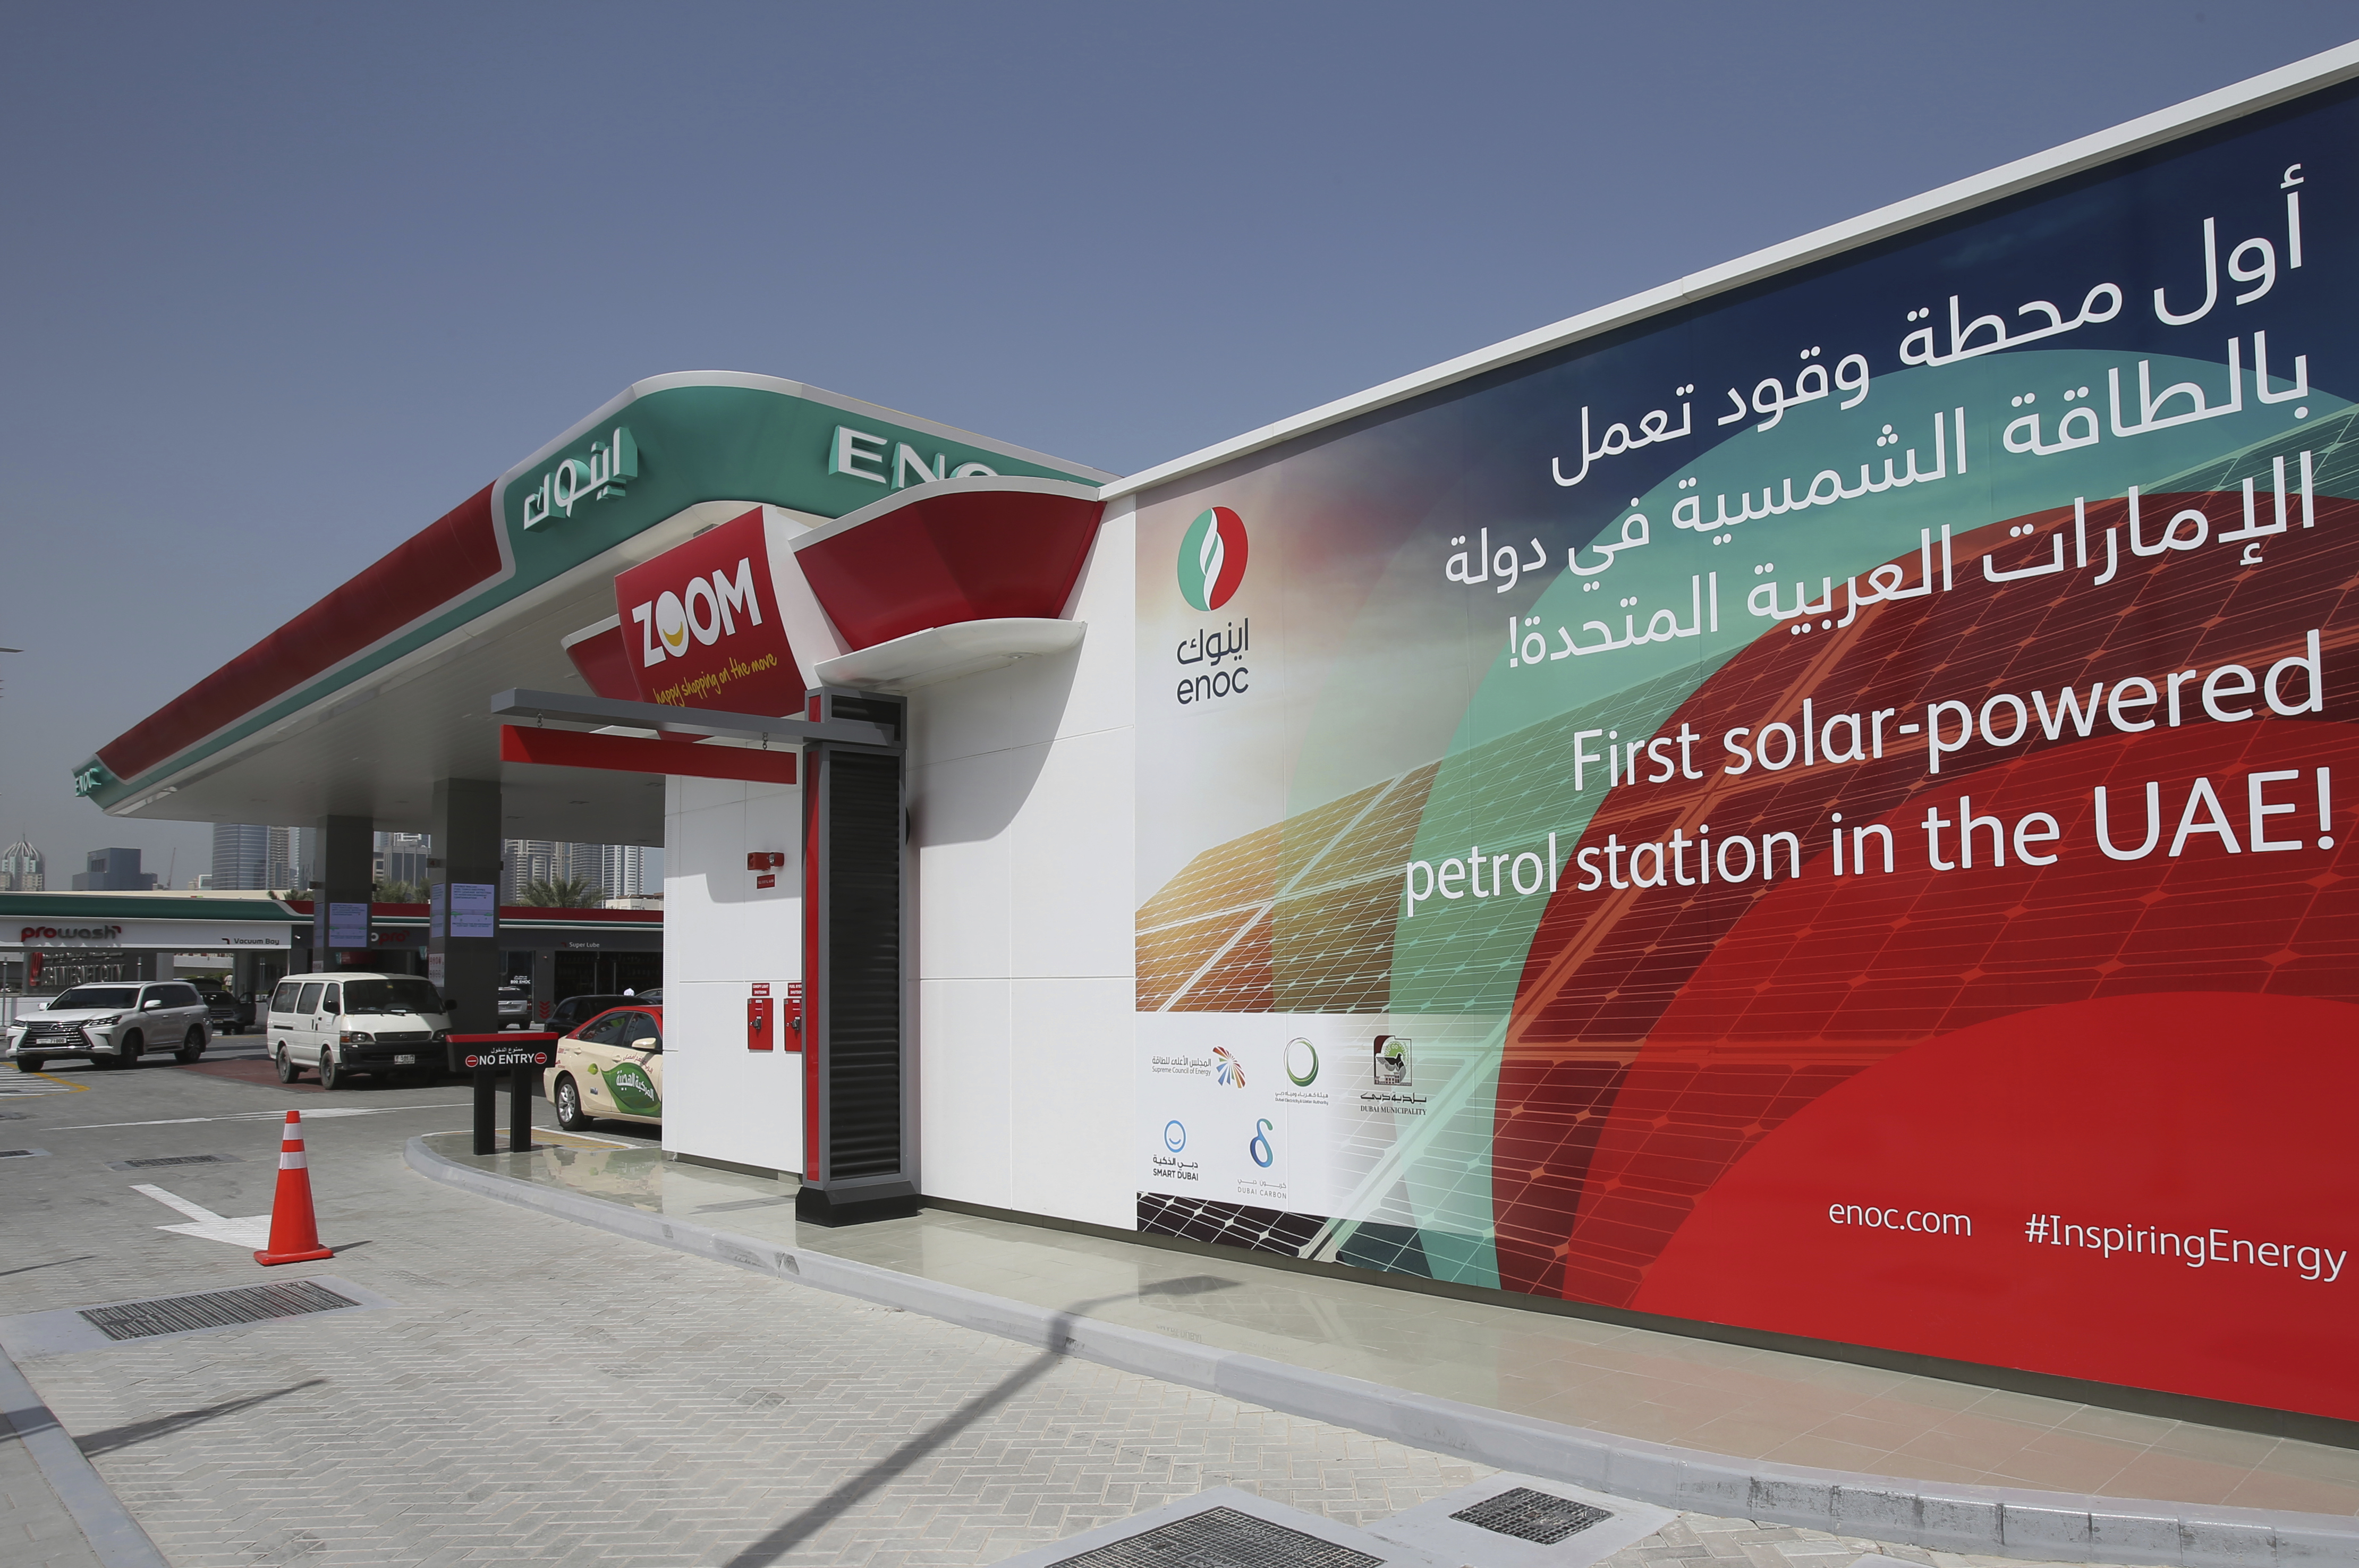 Dubai Solar Service Station Solar panels power an Emirates National Oil Company gas station, in Dubai, United Arab Emirates, Thursday, April 27, 2017. The government-owned oil company said Wednesday the country's first solar-powered gas station in Dubai, on the city's main Sheikh Zayed Road thoroughfare, is covered with solar panels that can generate up to 120 kilowatt hours. (AP Photo/Kamran Jebreili)